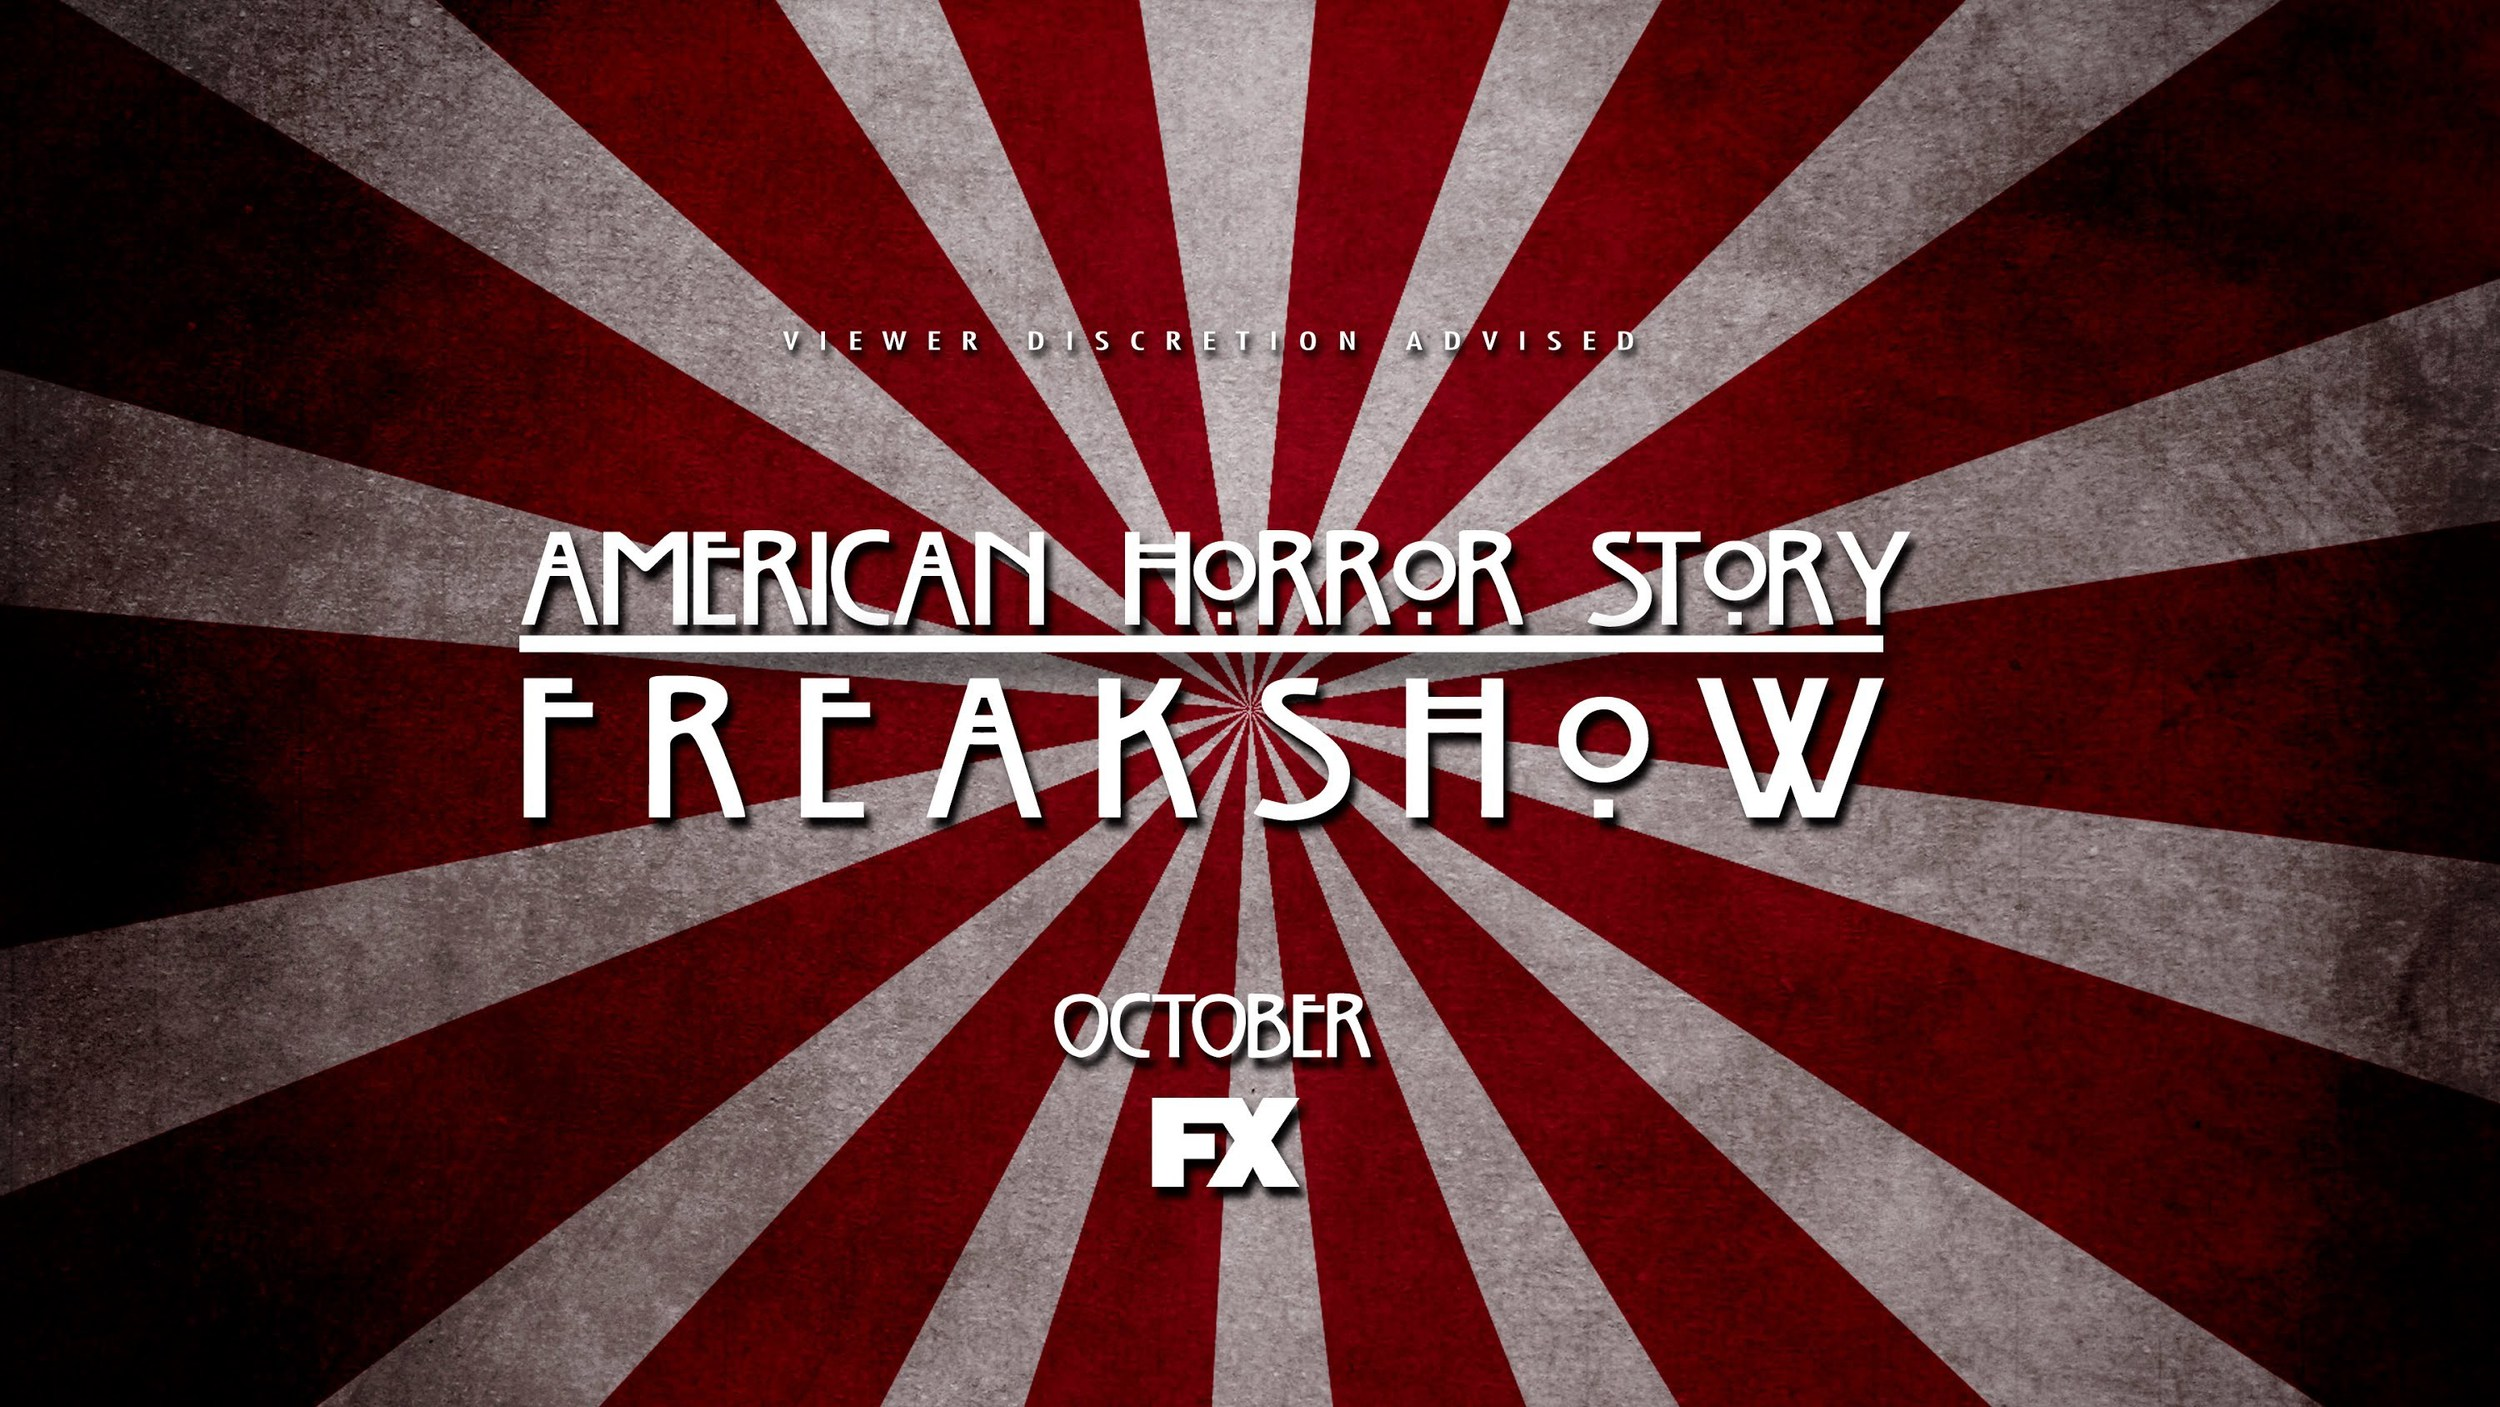 american-horror-story-season-4-title-revealed